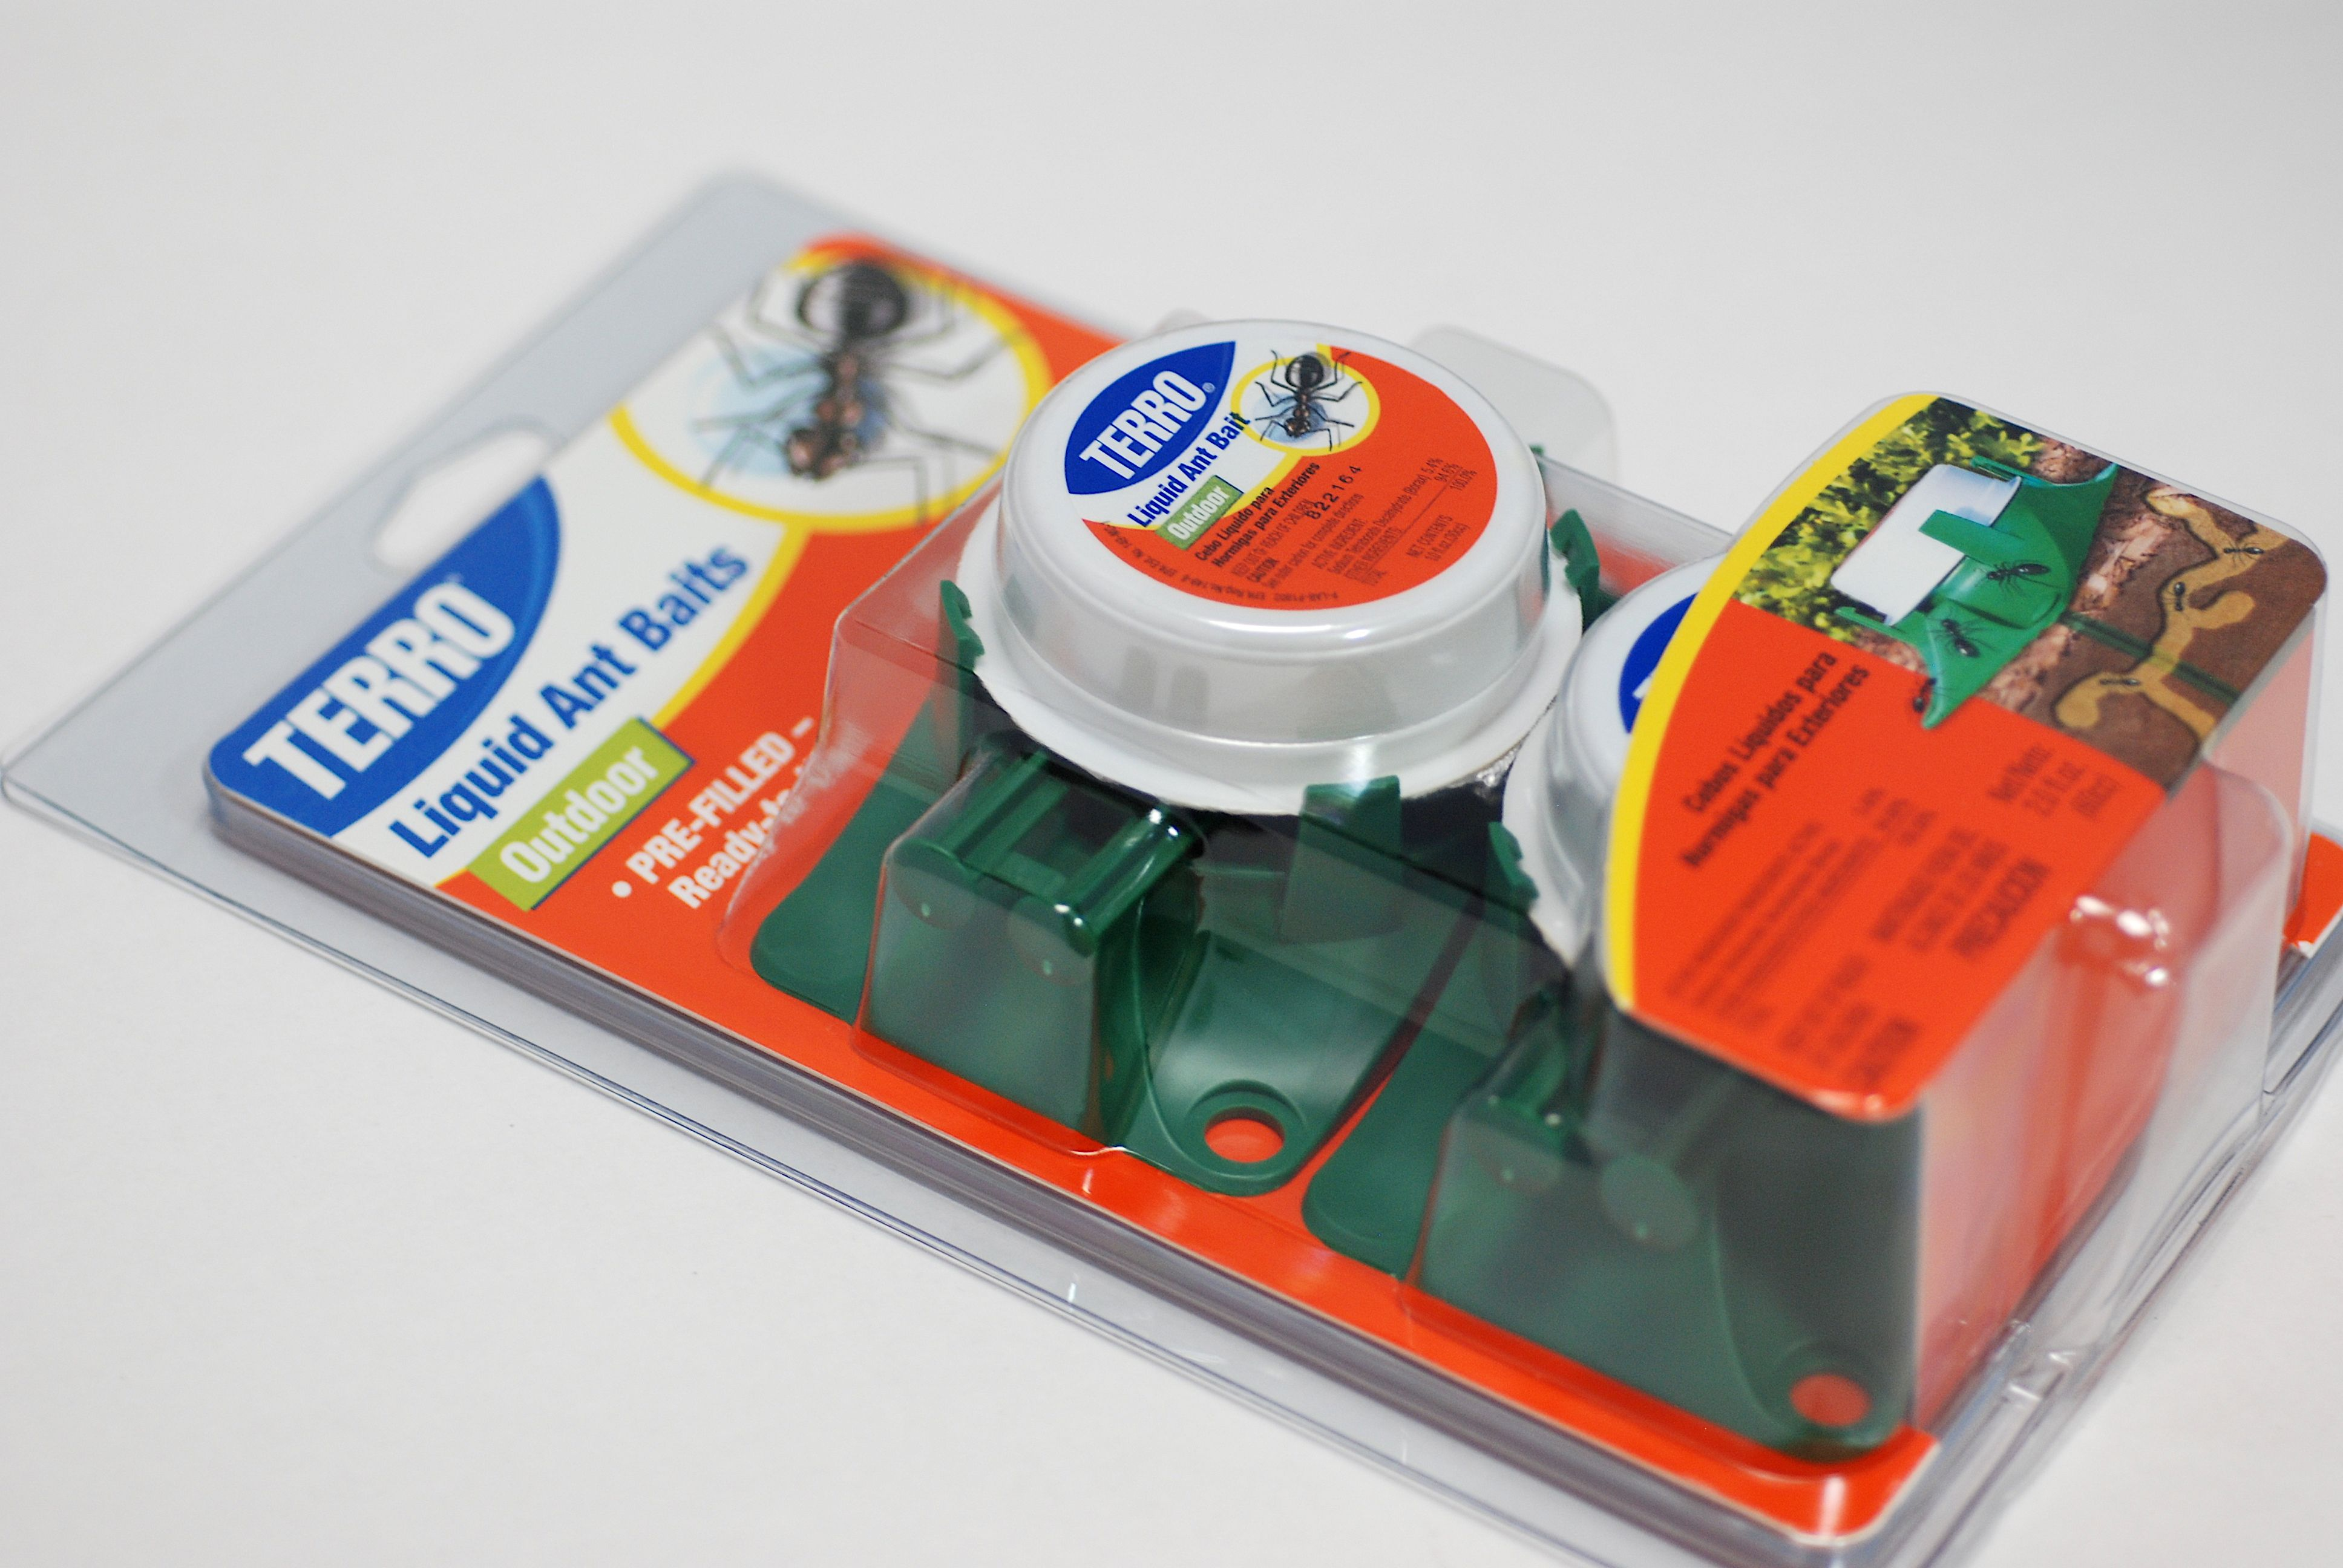 Insecticide Packaging